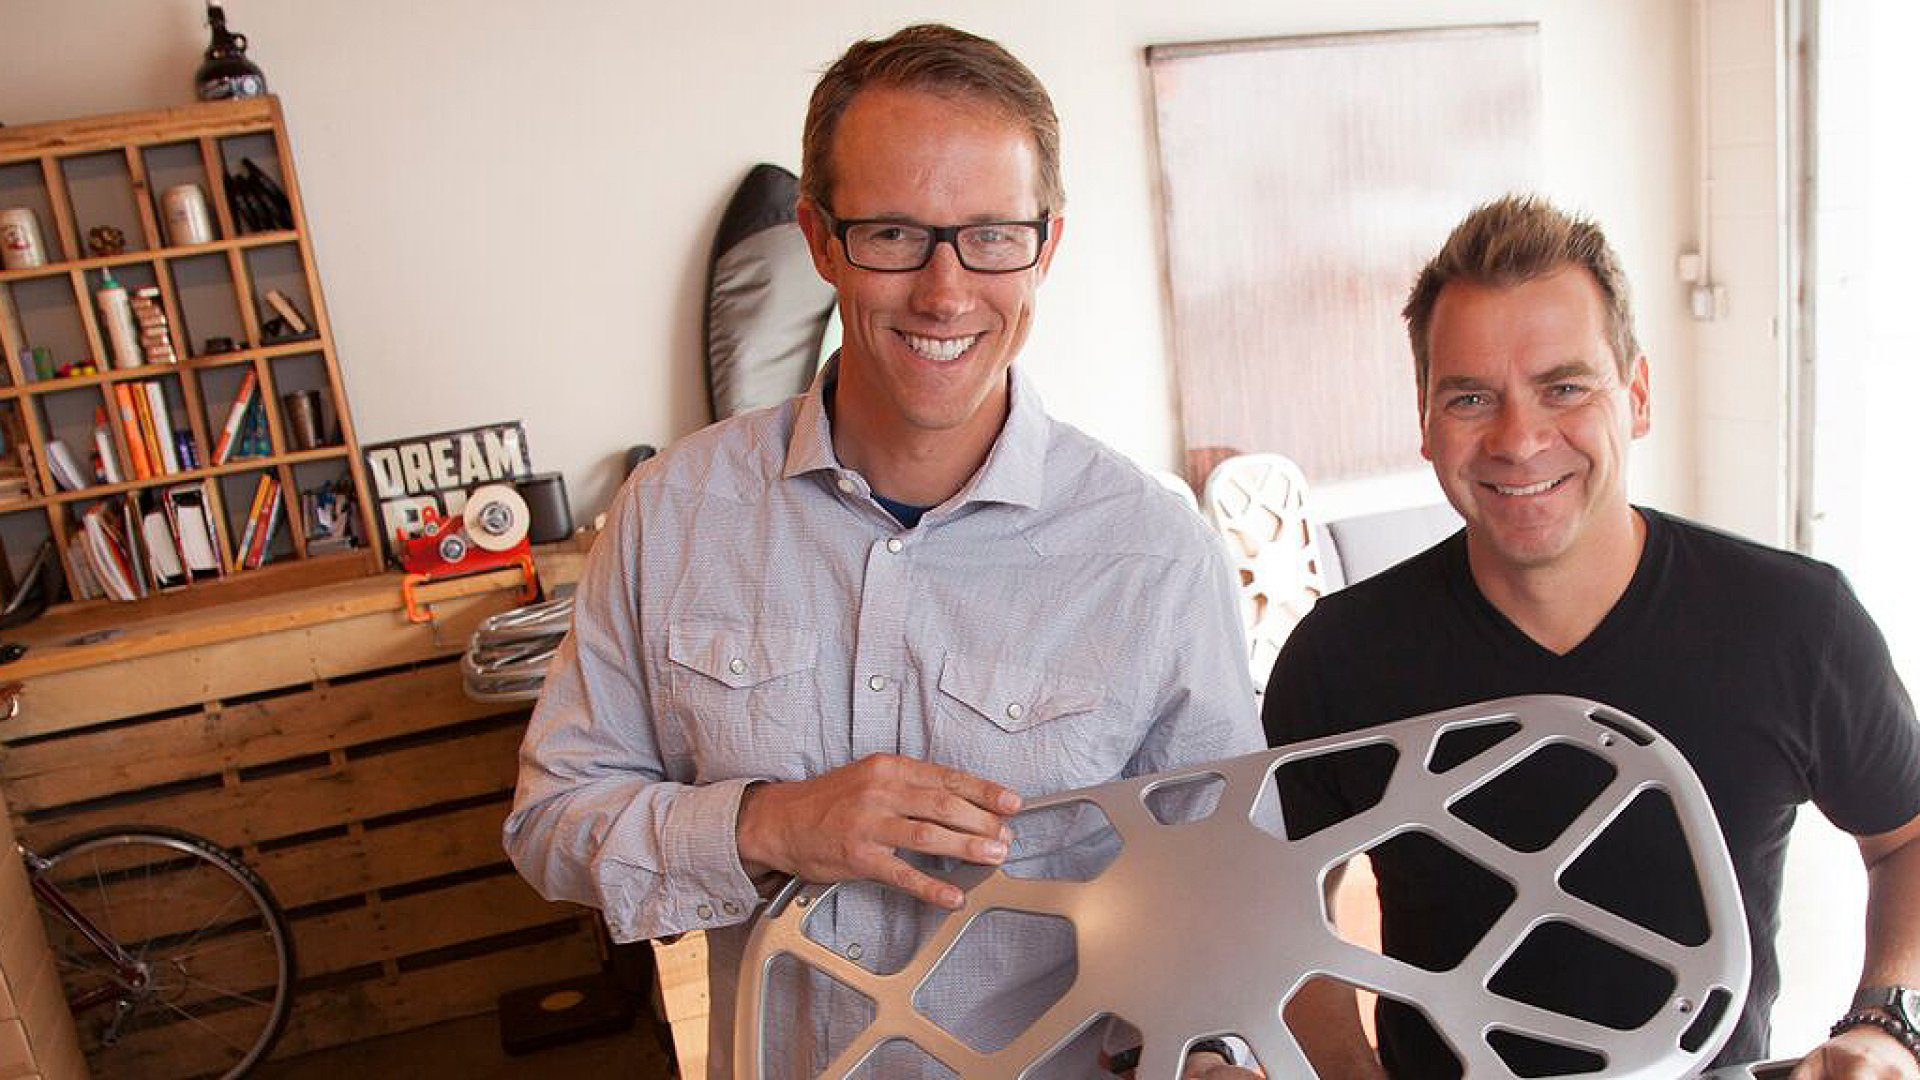 FluidStance founder Joel Heath pictured with David Malina of Happy Royale, who helped design the company's award-winning Level.